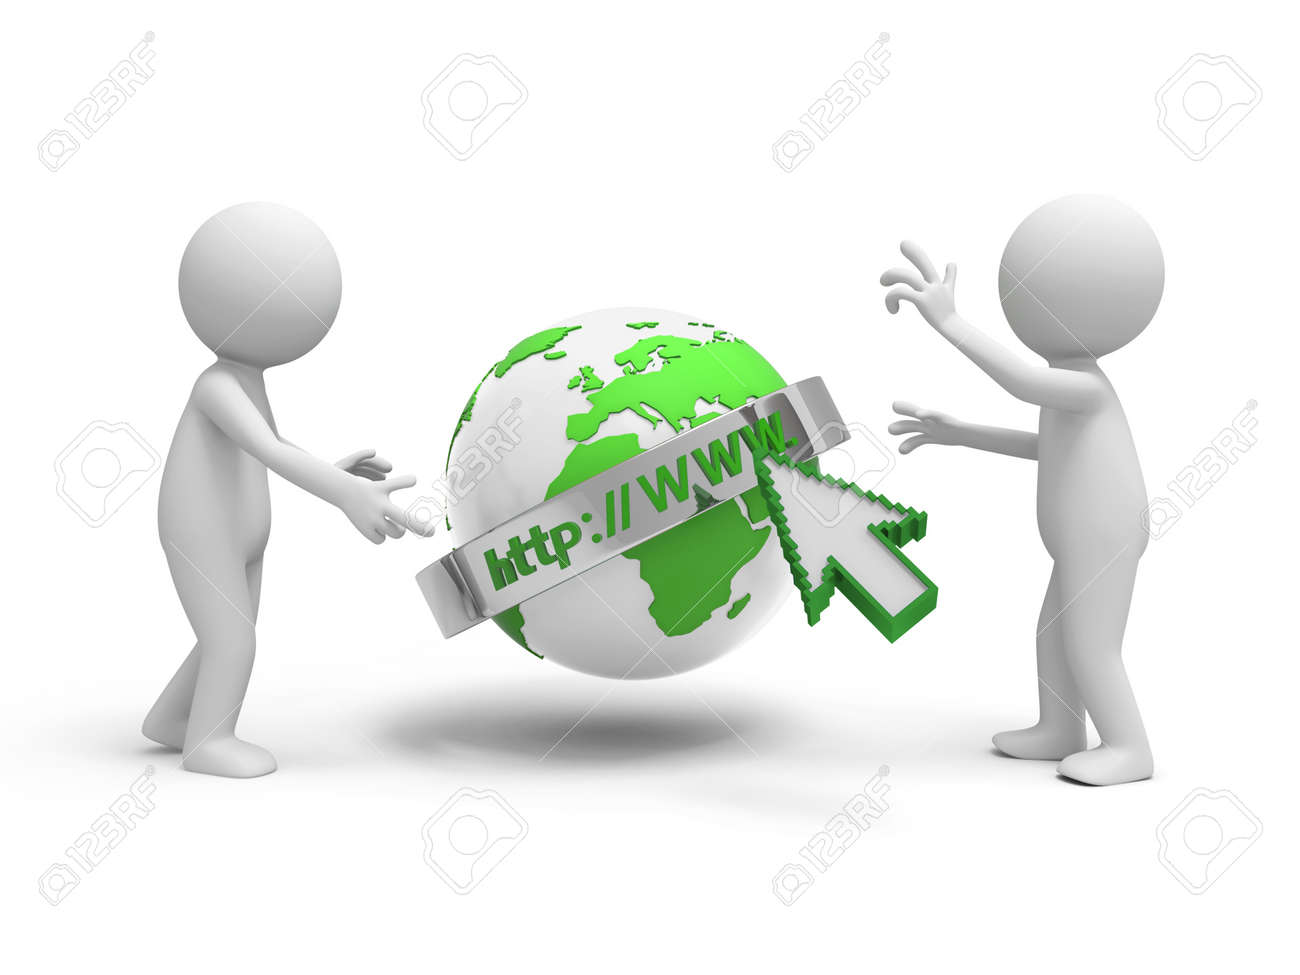 Two 3d people discussing, the internet model background Stock Photo - 18909964